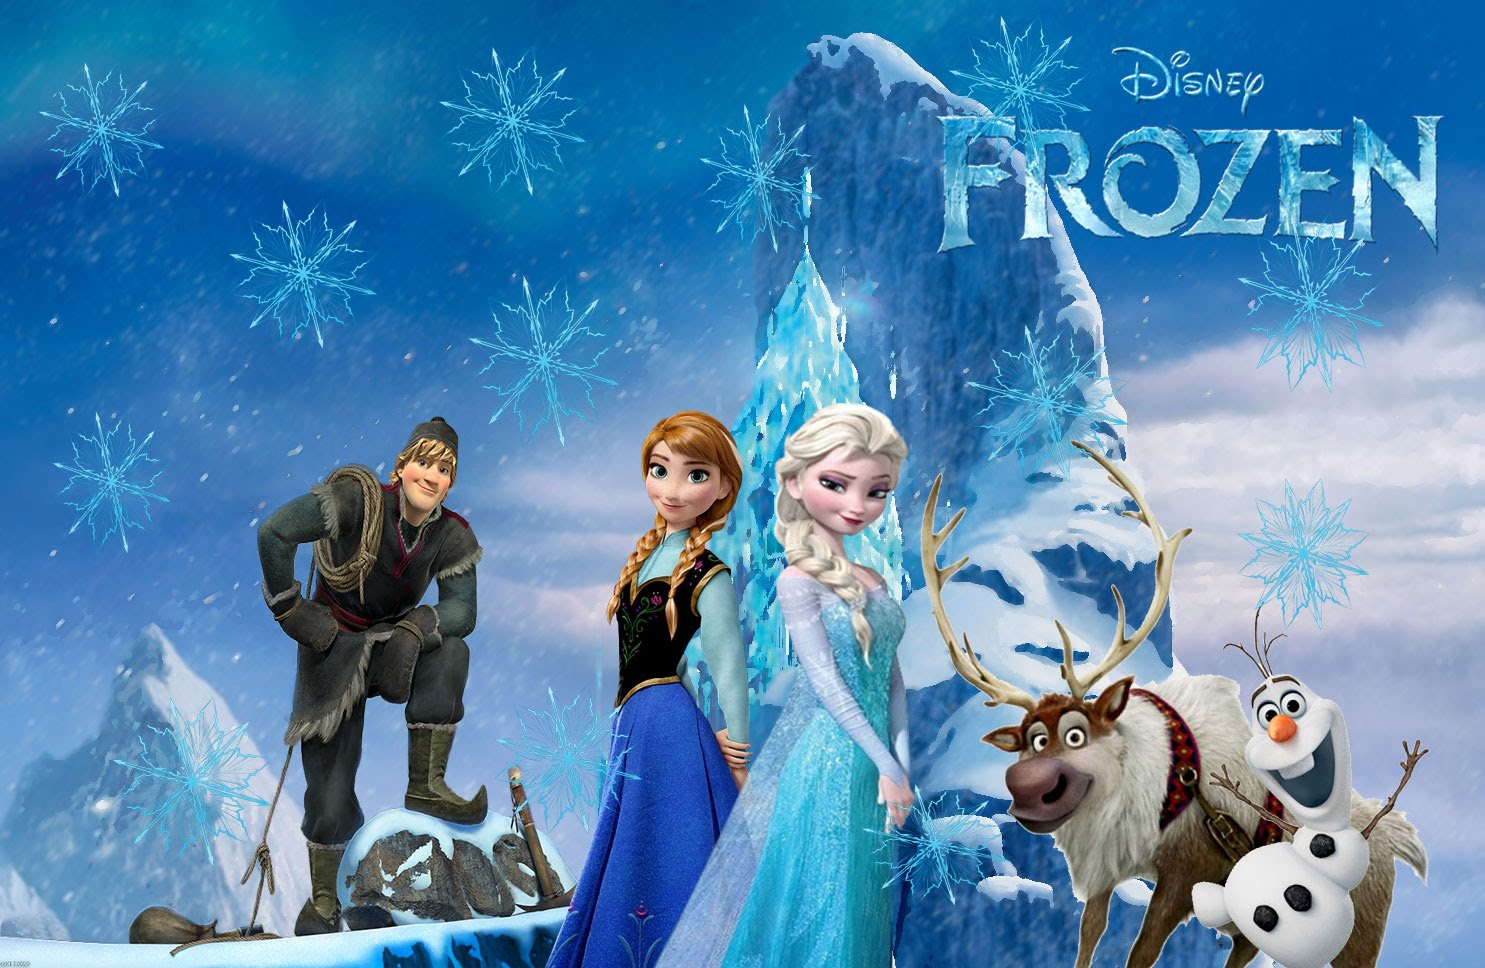 Frozen Wallpaper with main Characters